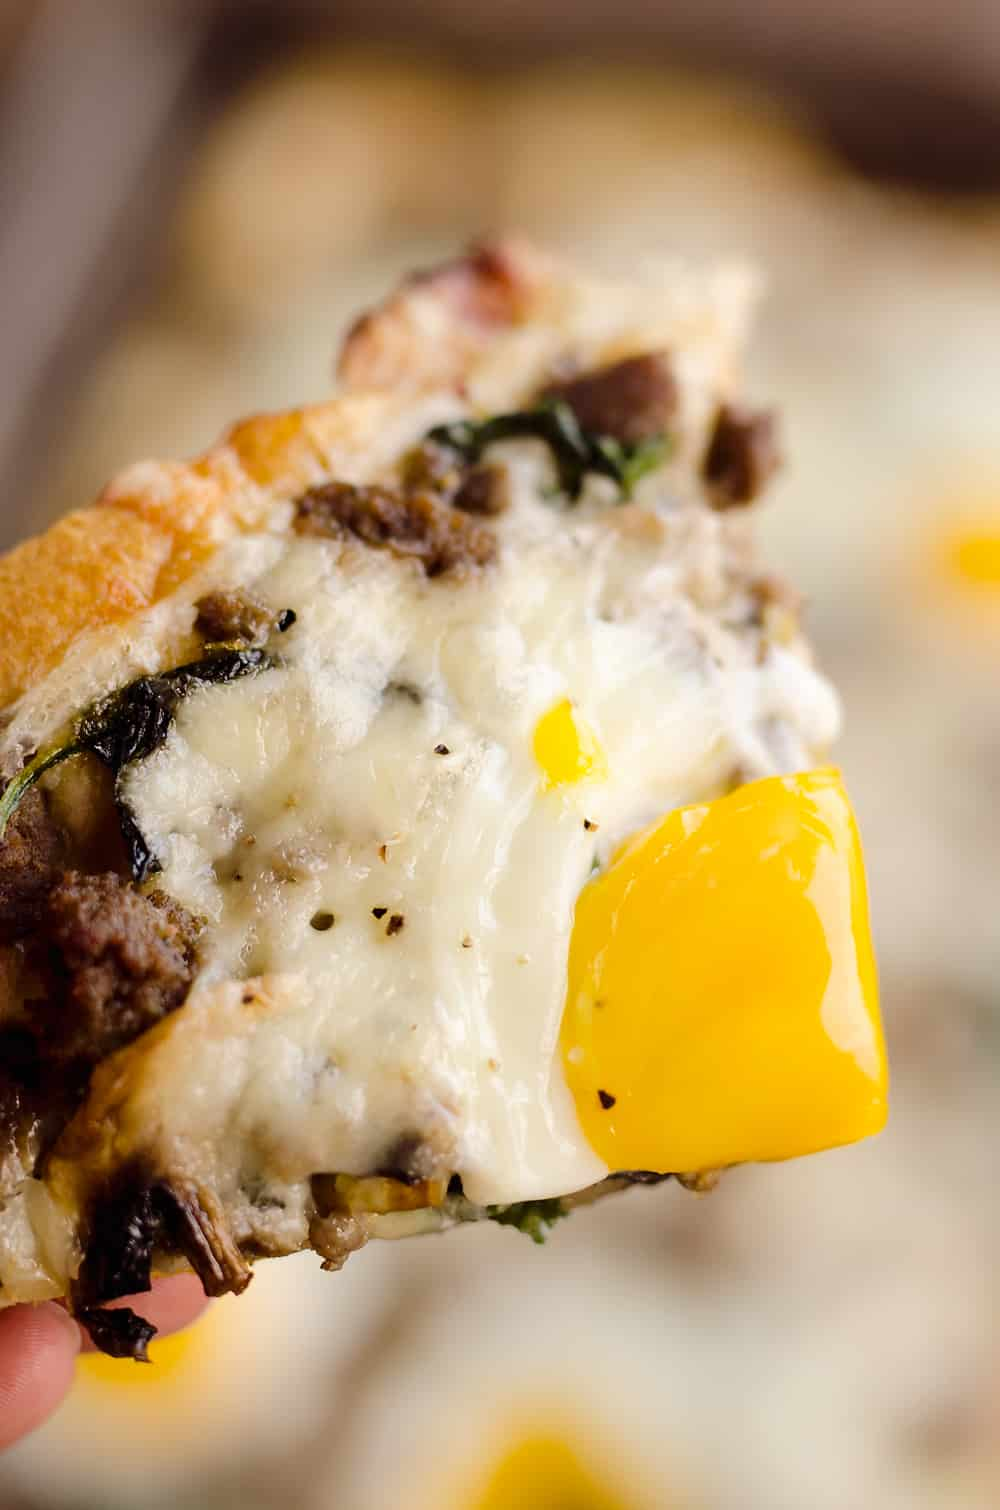 Turkey Sausage Breakfast Pizza is an easy recipe containing all of the best parts of breakfast! A flaky crescent crust is topped with a mixture of lean Jennie-O turkey sausage, vegetables, creamy Havarti cheese and soft baked eggs for a meal you won't soon forget.